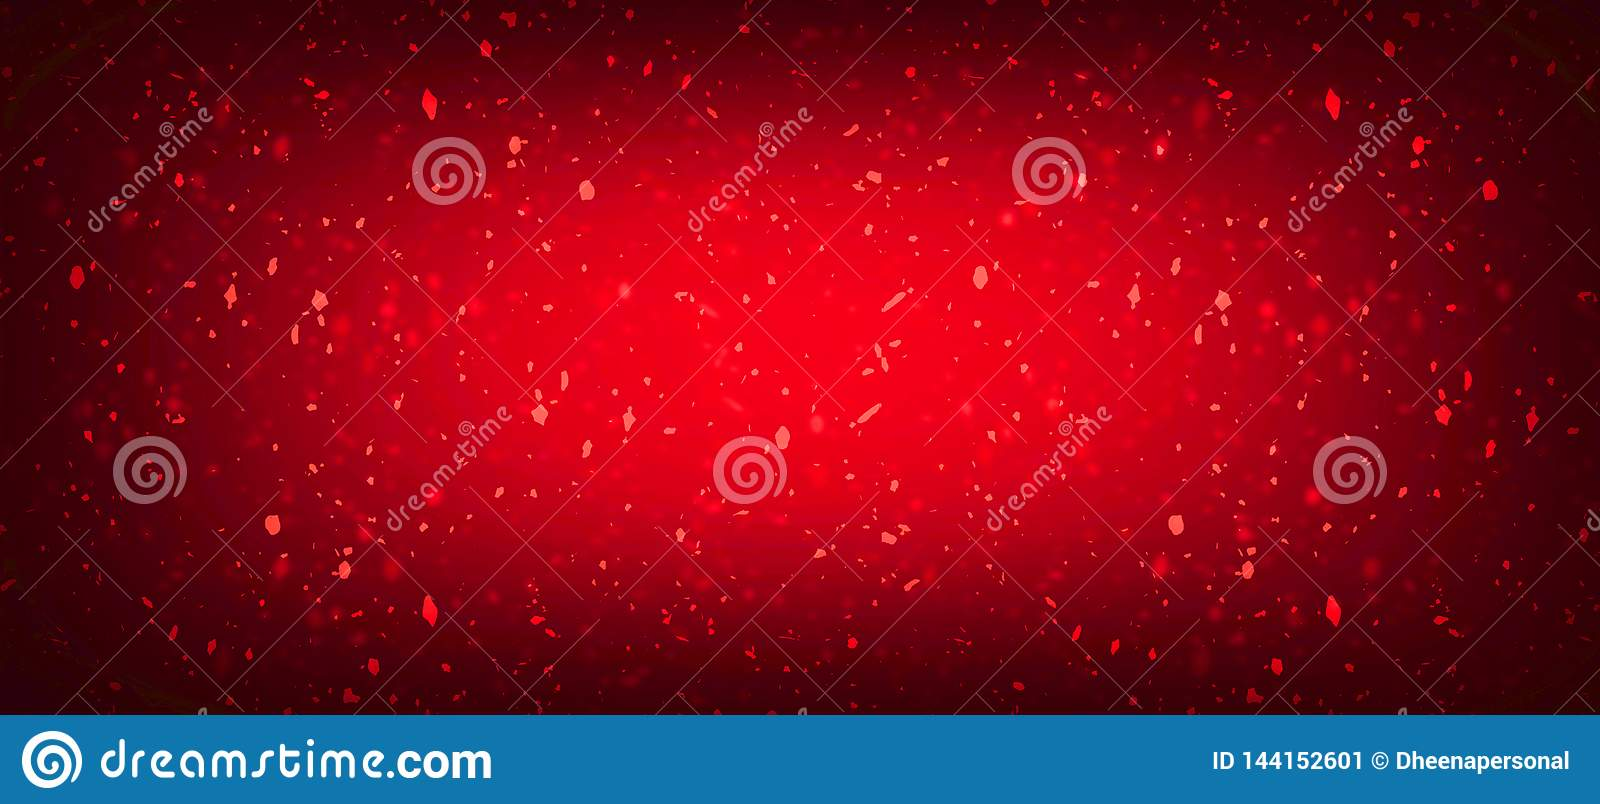 Red abstract background or texture Vintage Red Cracked Wall. Beautiful Grunge Background.